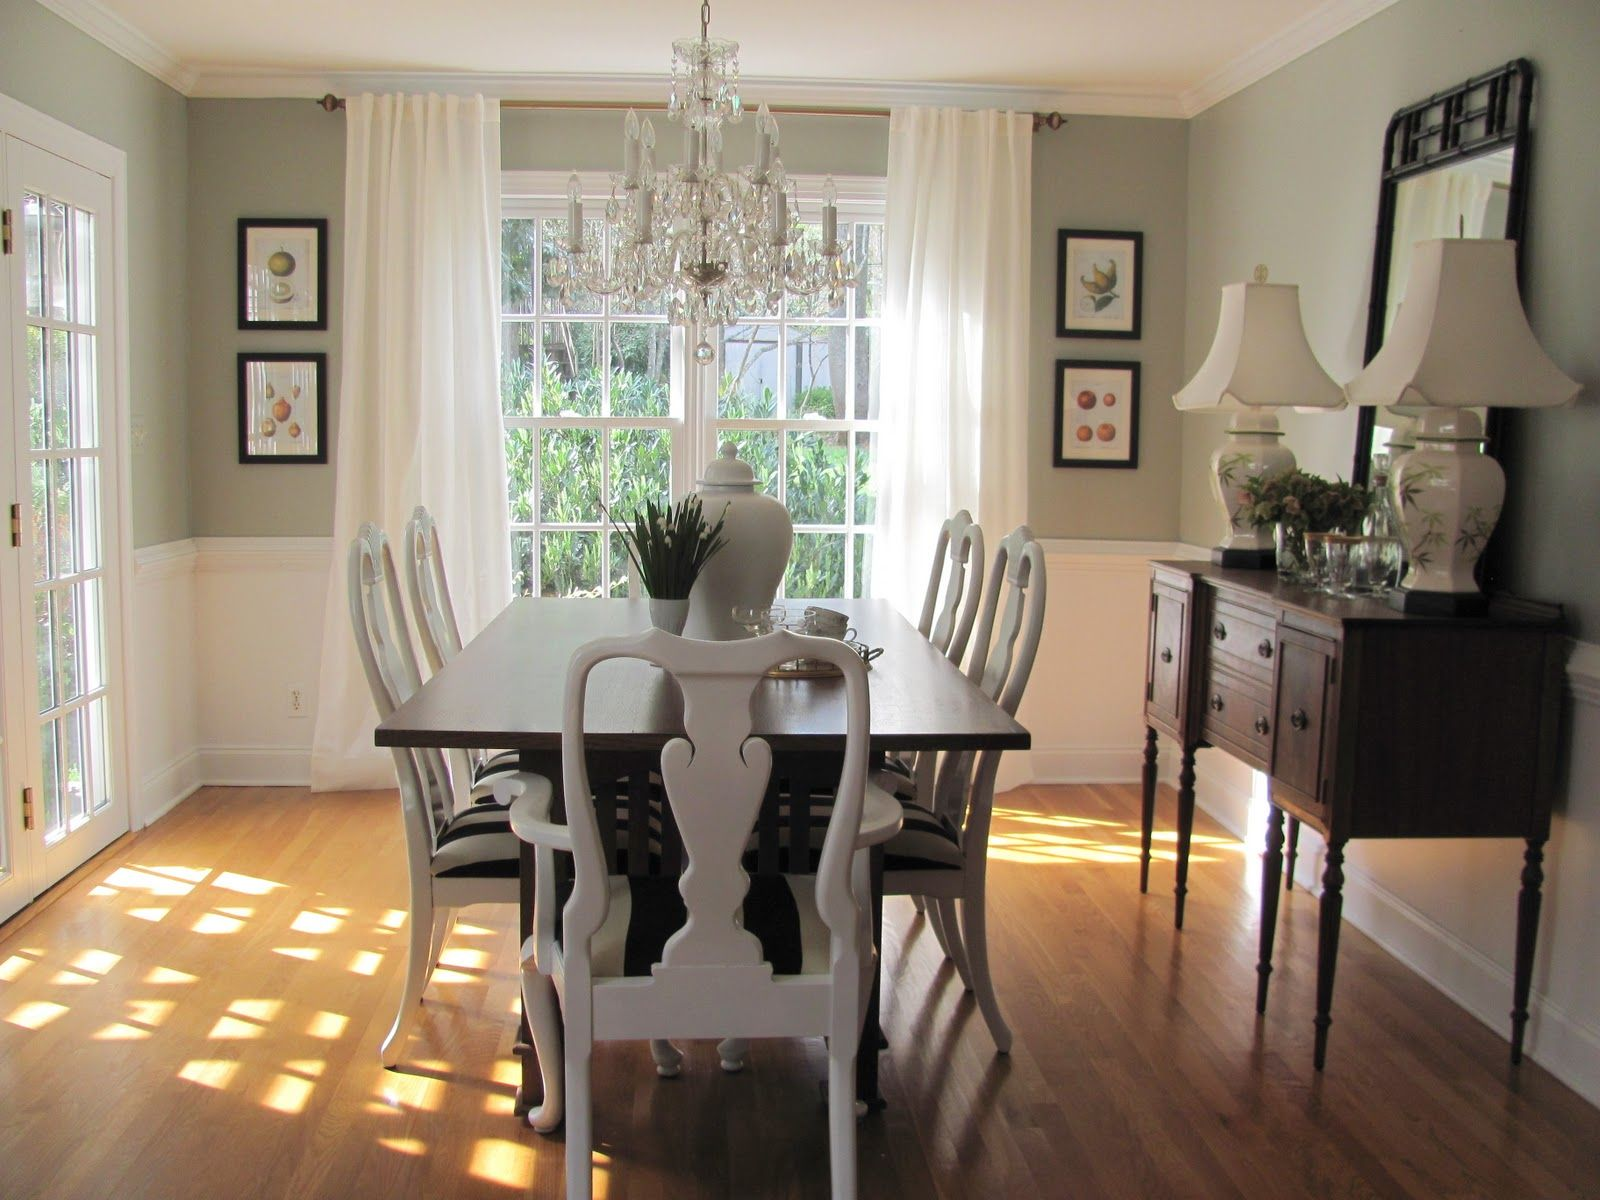 dining room paint colors with chair rail   Google Search. dining room paint colors with chair rail   Google Search   forever